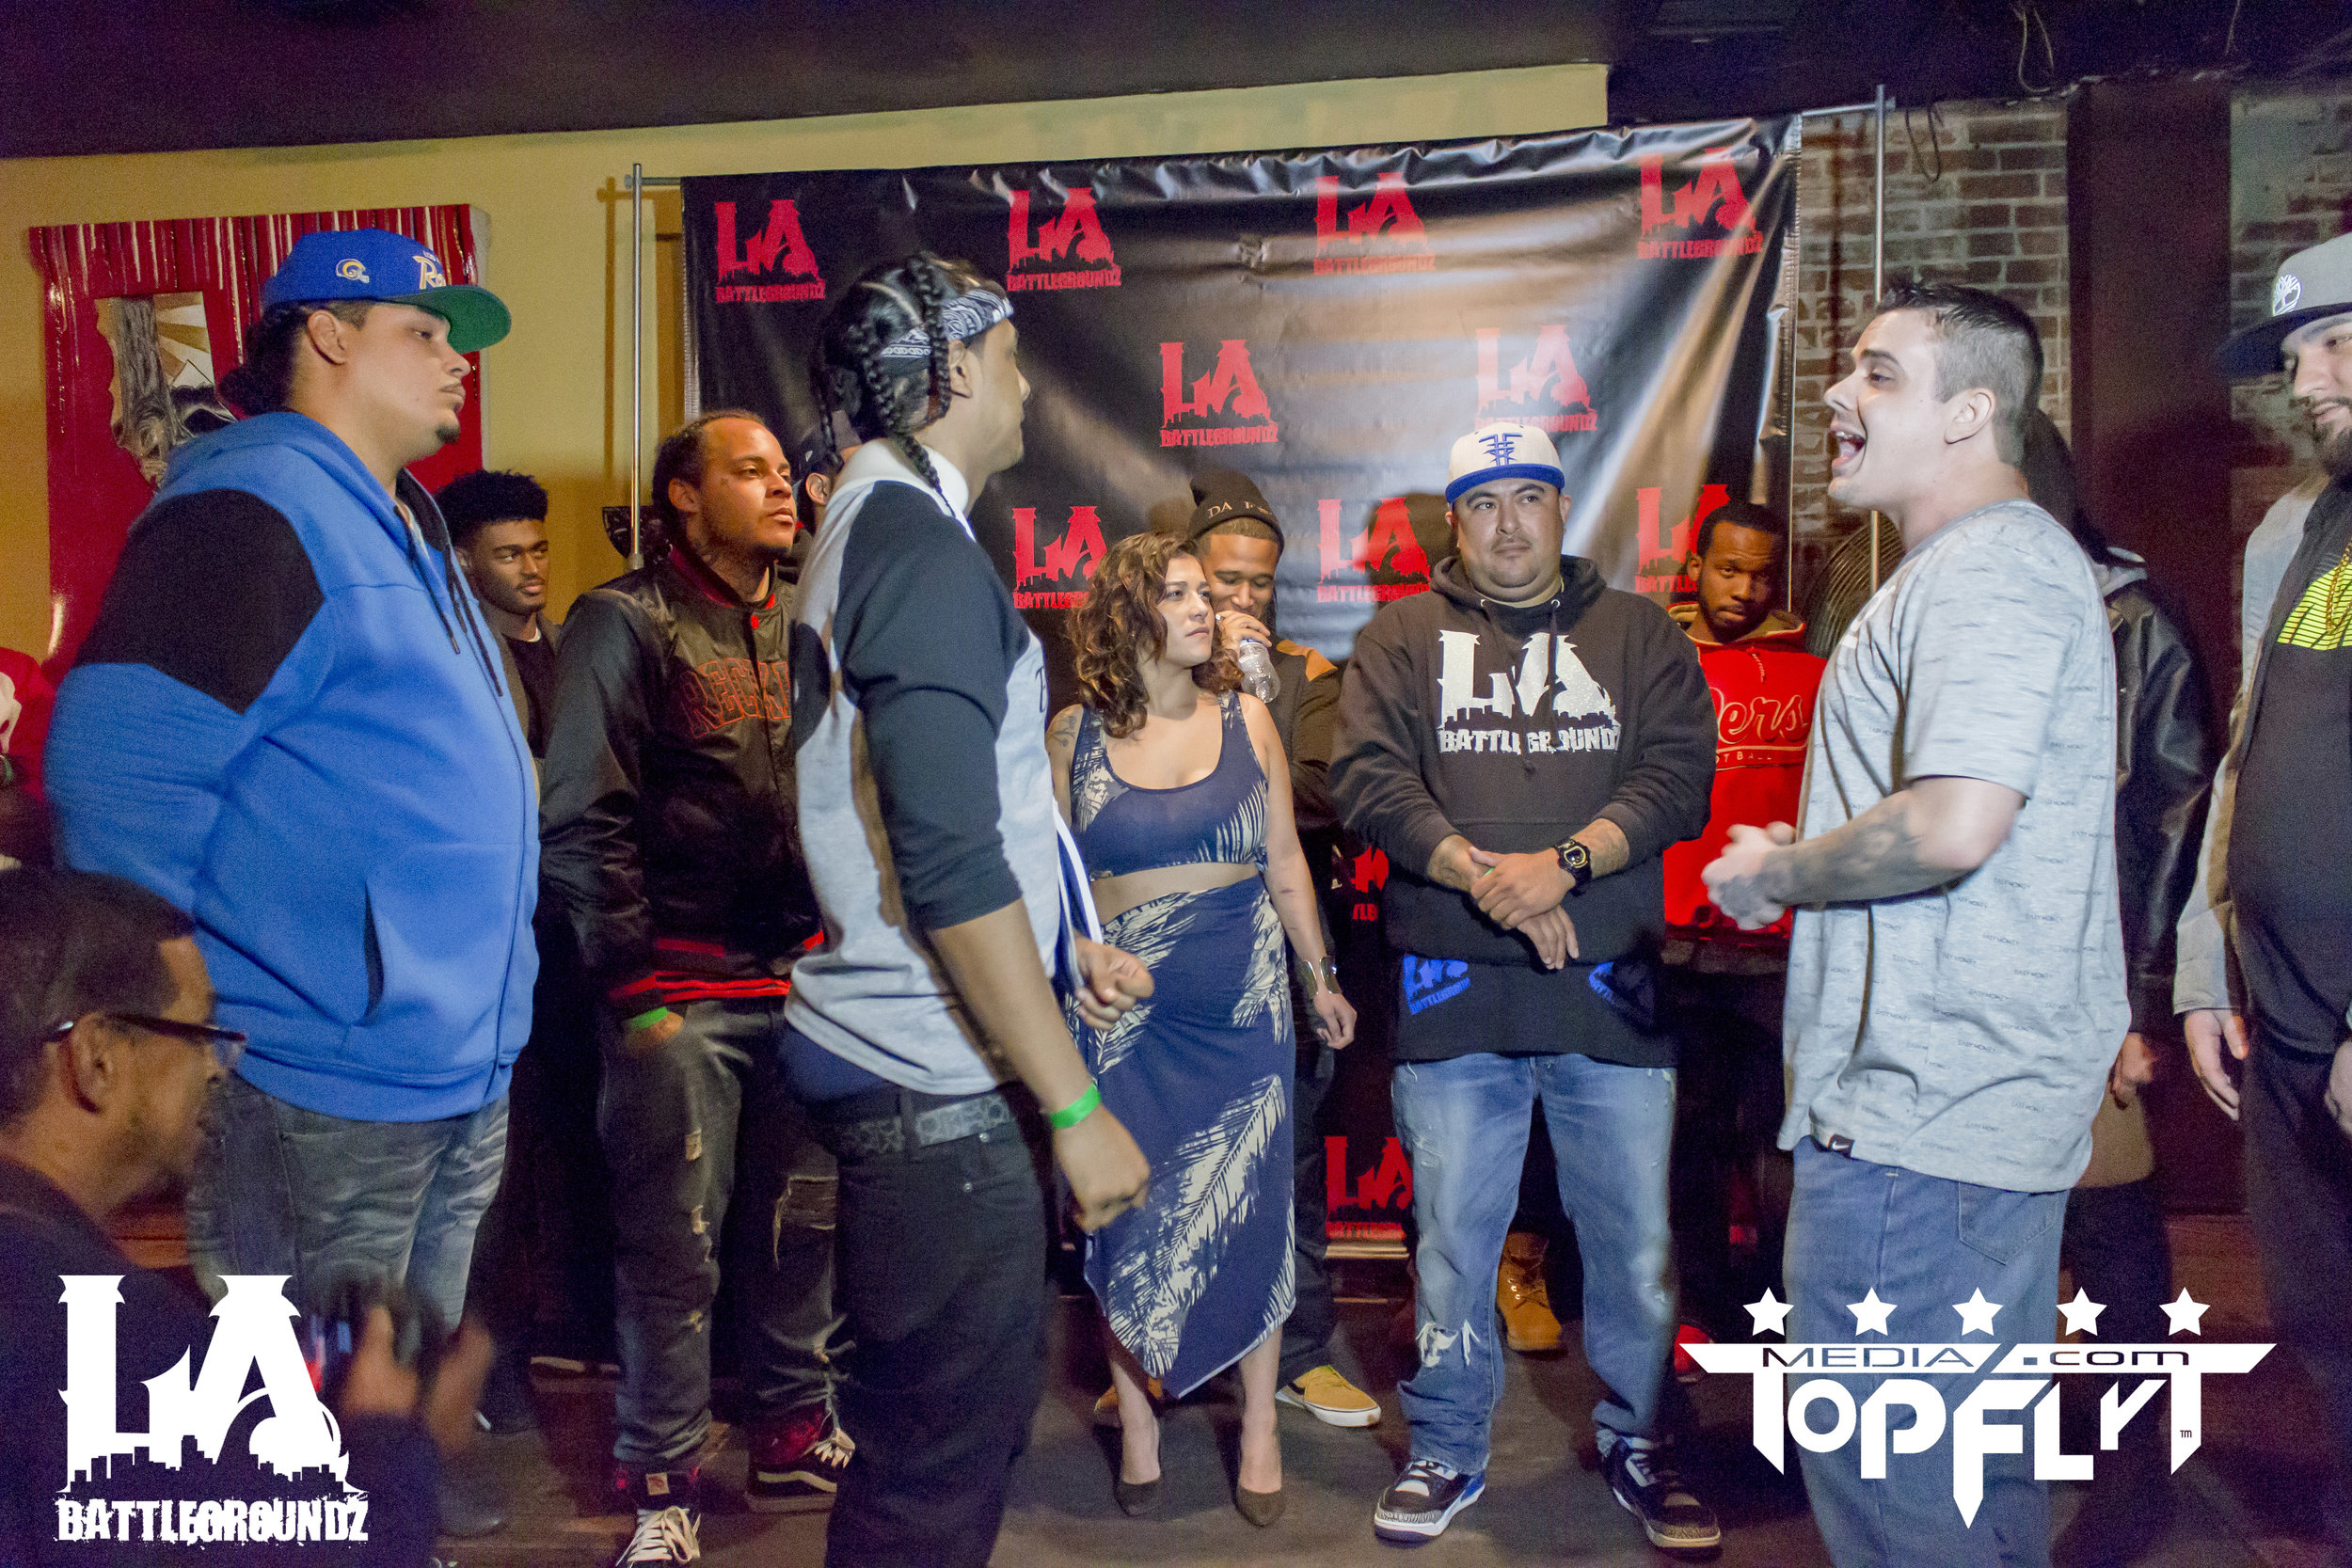 LA Battlegroundz - Decembarfest - The Christening_73.jpg